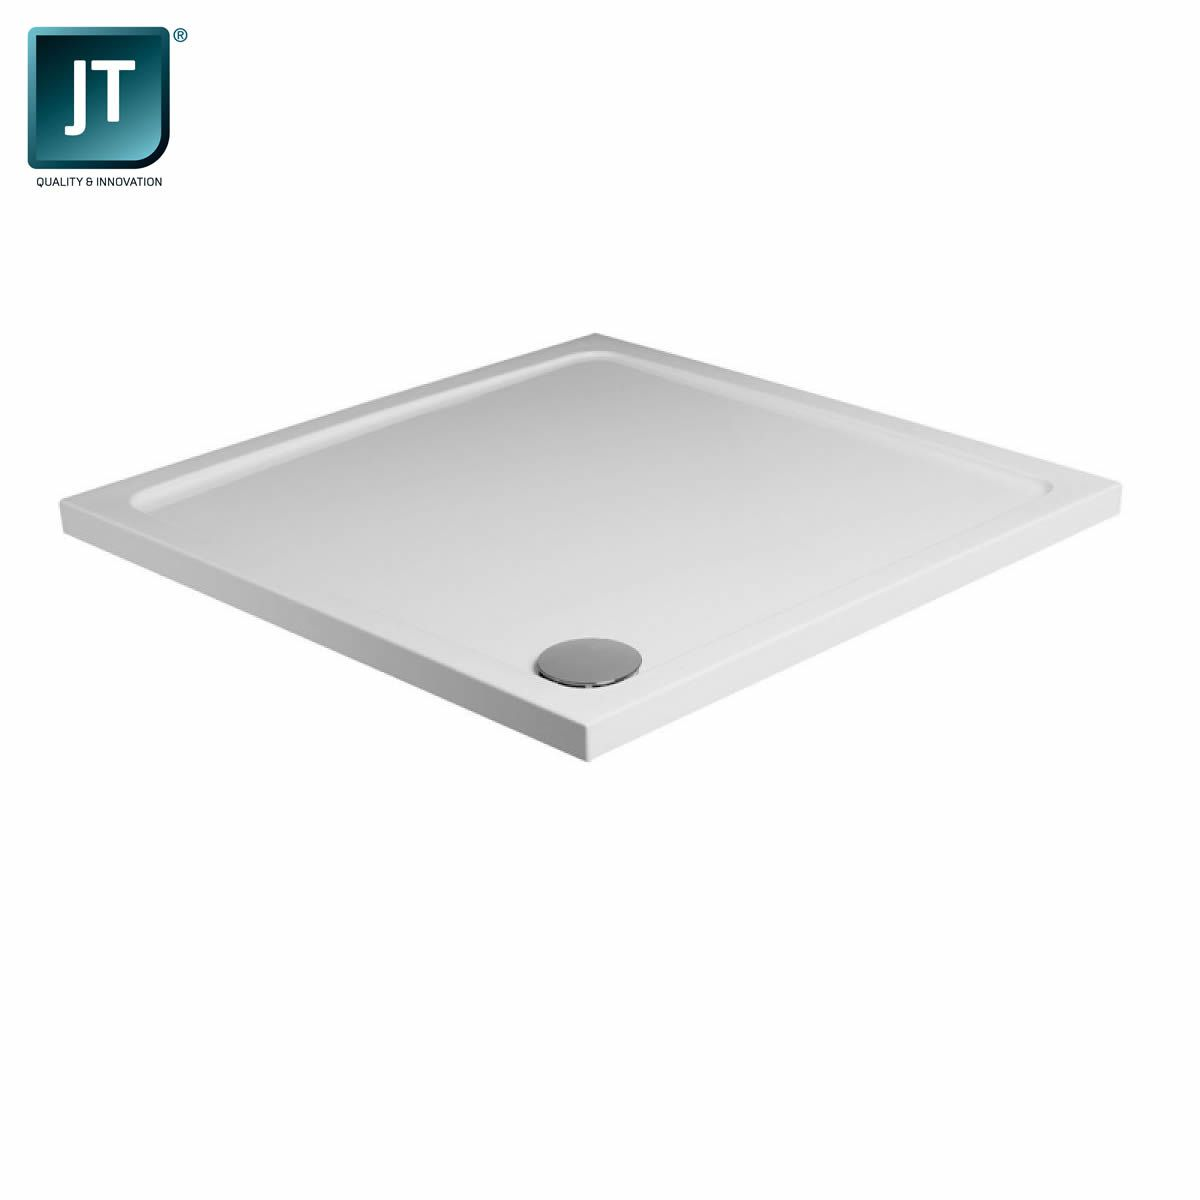 JT Fusion Low Profile Square Shower Tray